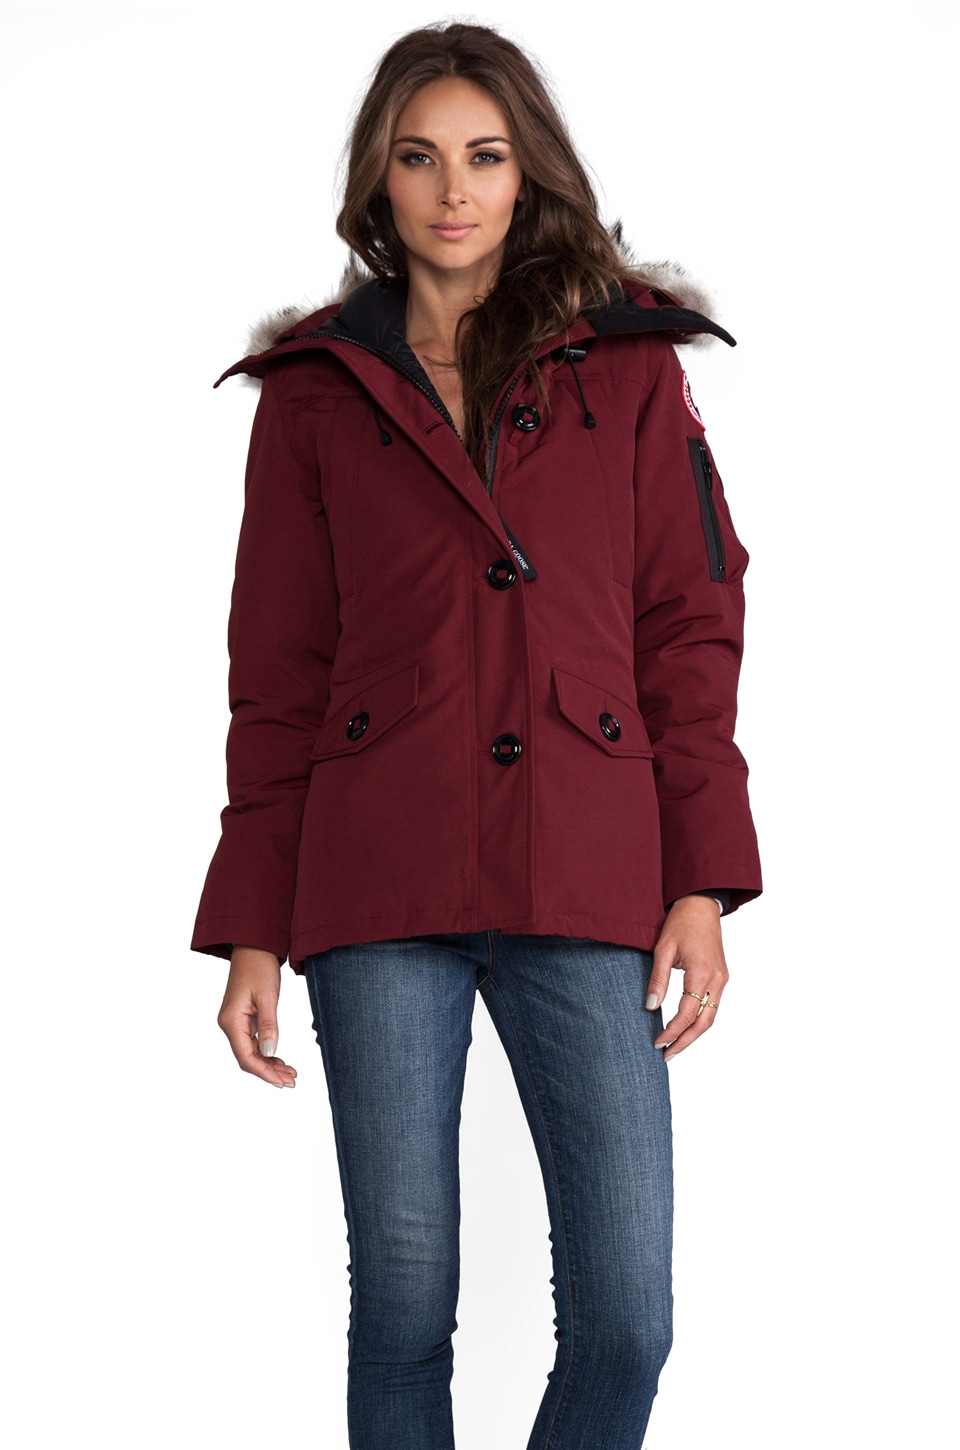 Canada Goose Montebello Parka in Niagara Grape